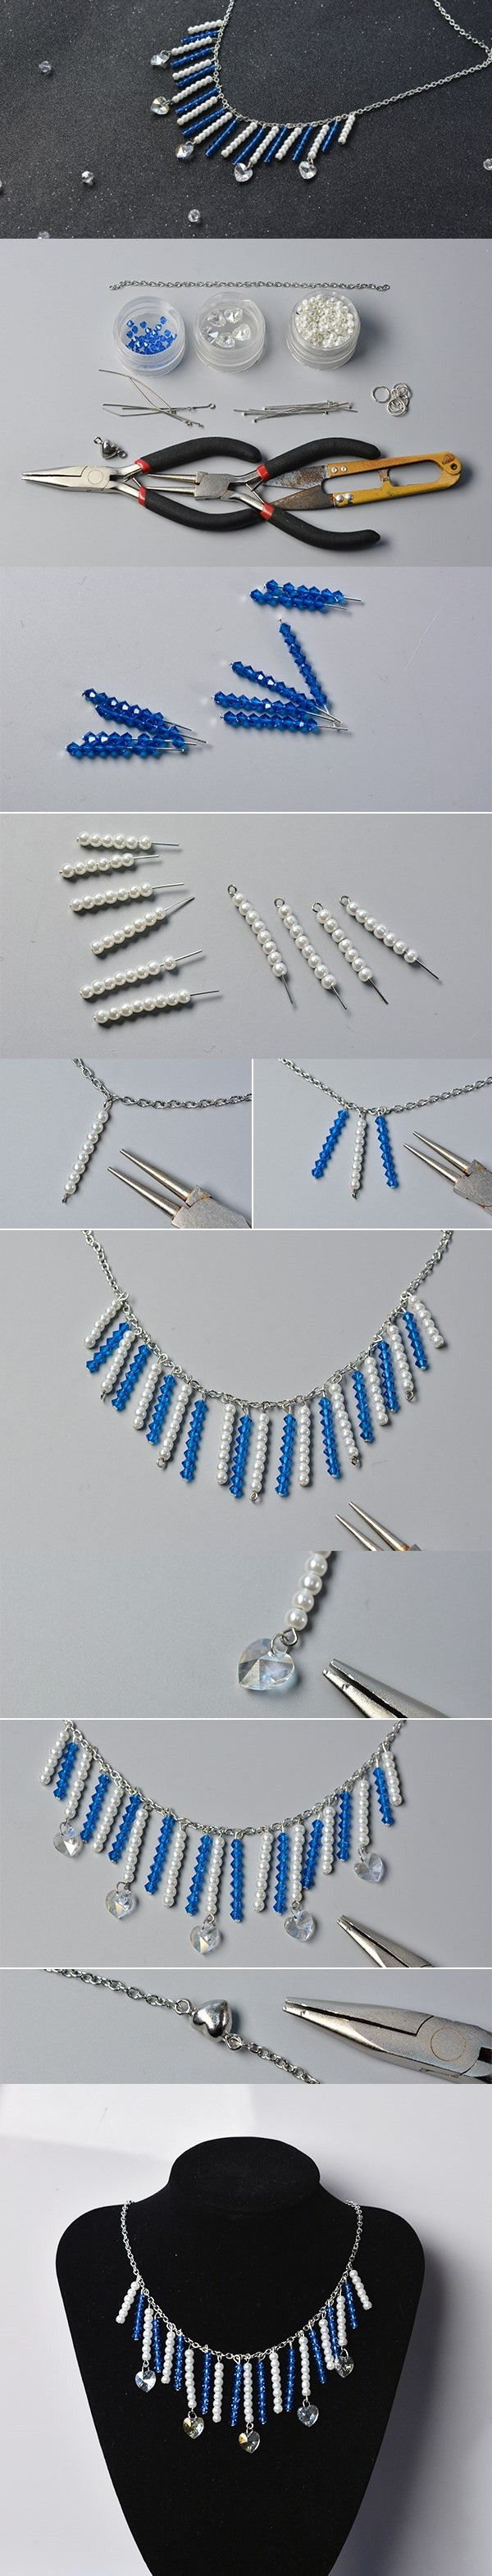 Making Beaded Tassels Chain Necklace with Heart Beads